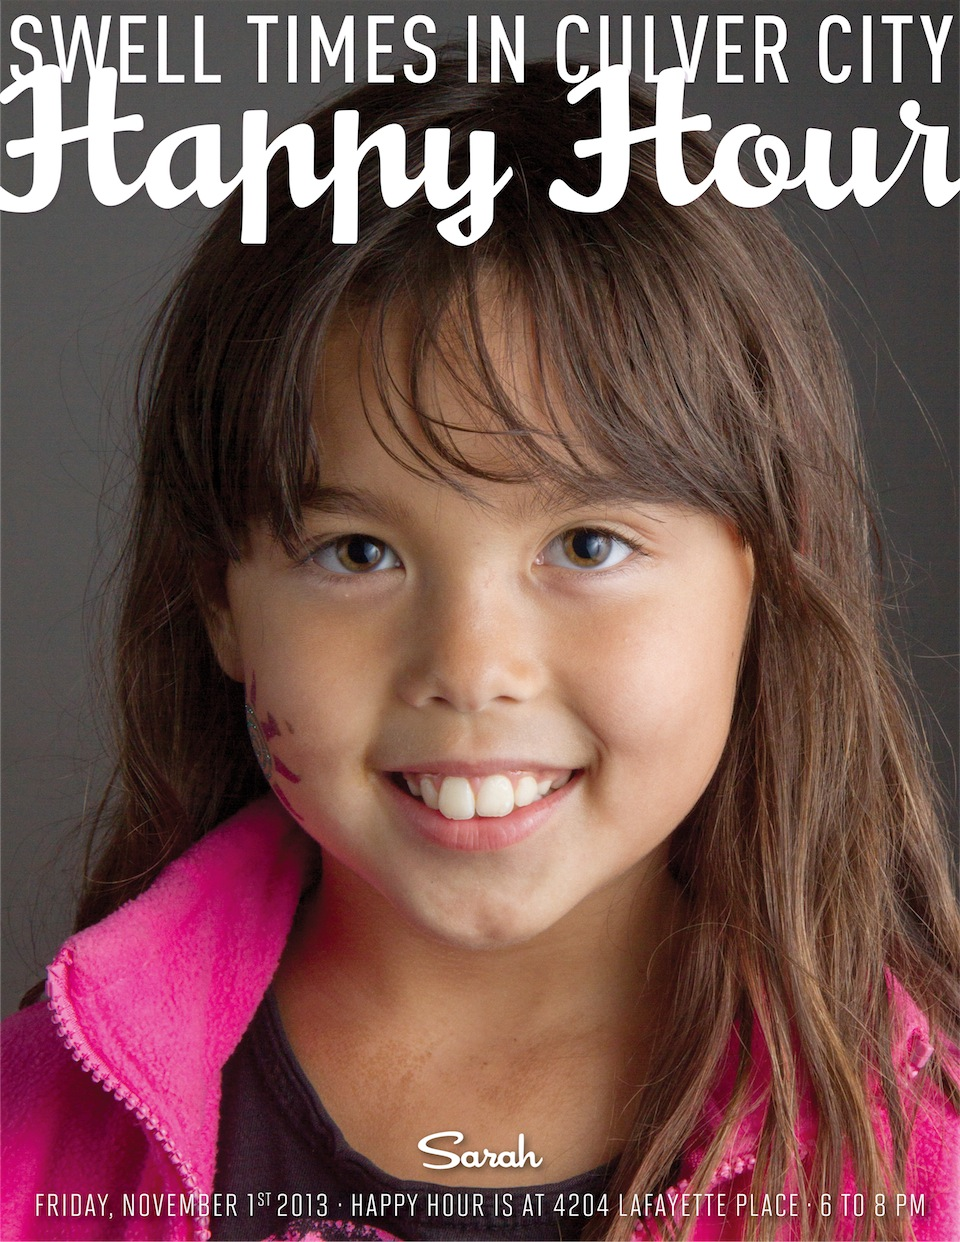 HappyHour_KidsPortraits_PartTwo_2013_10_31__23h123.jpeg